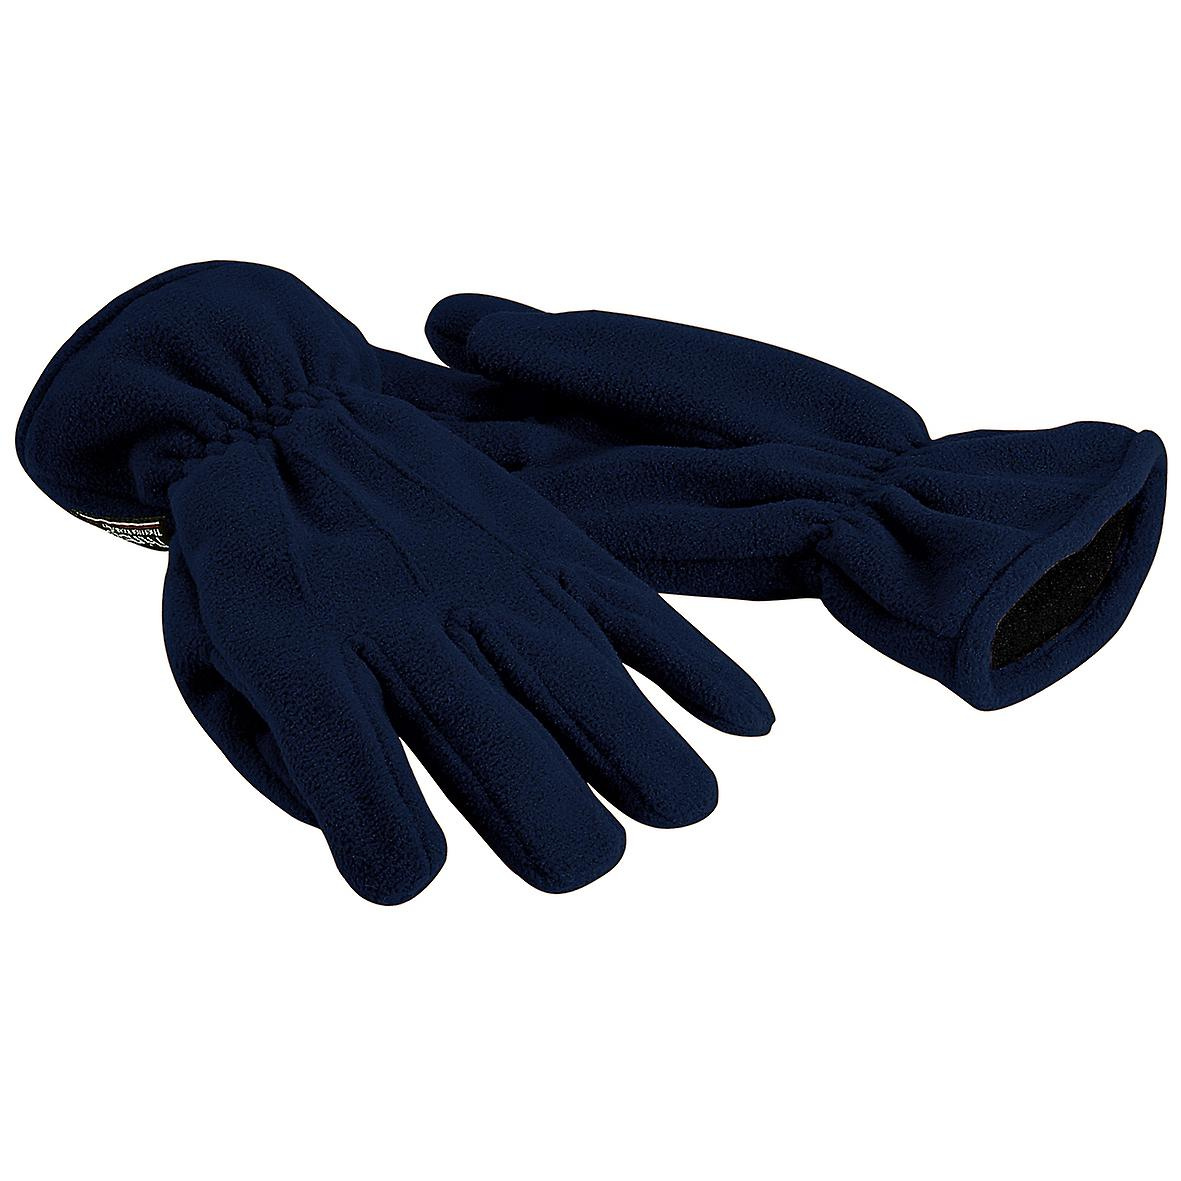 Beechfield Unisex Suprafleece Anti-Pilling Thinsulate Thermal Winter Gloves